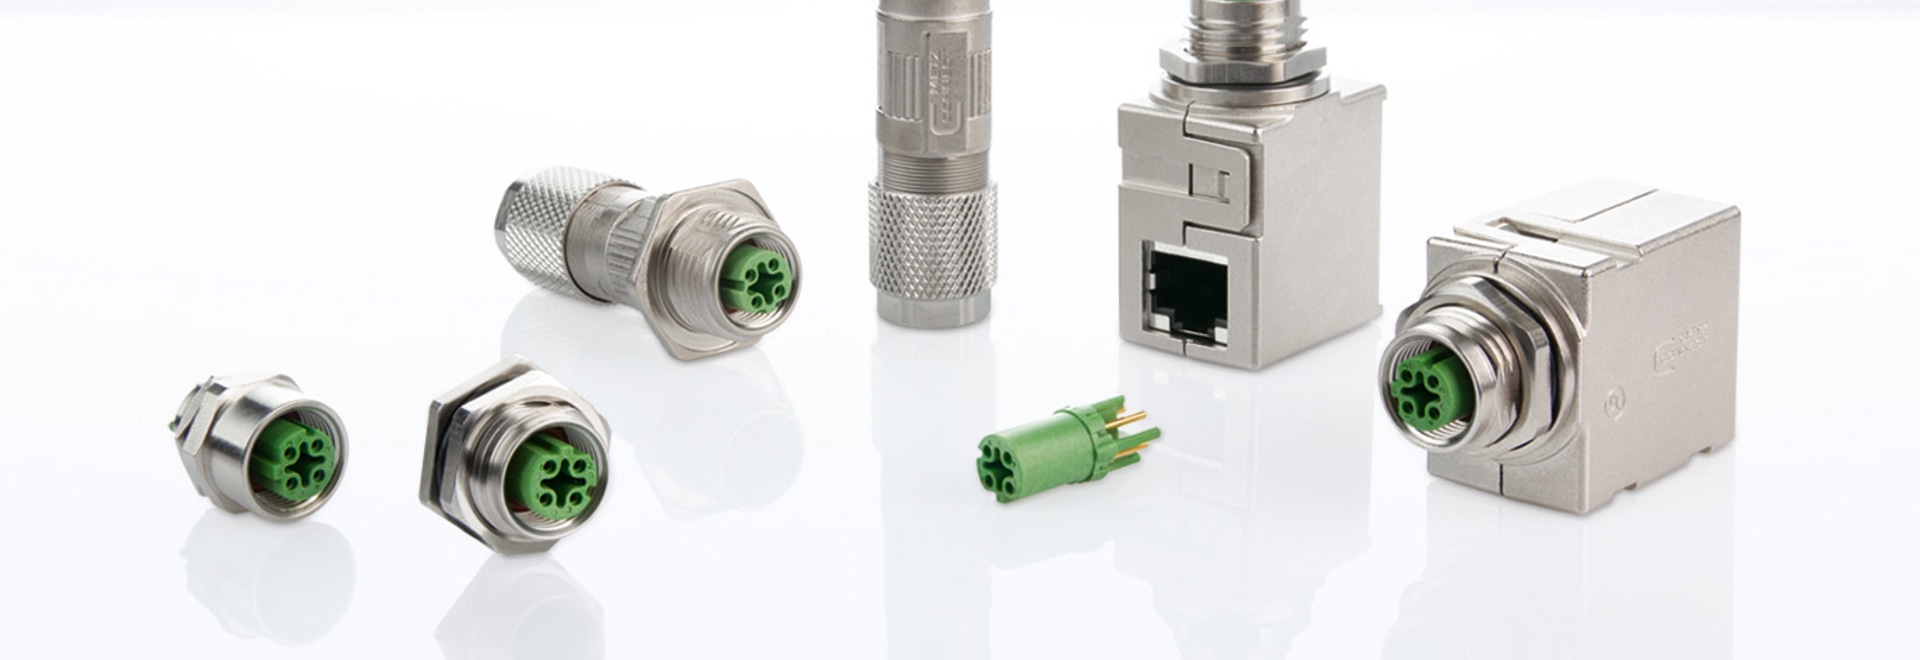 M12 circular connectors in the Internet of Things